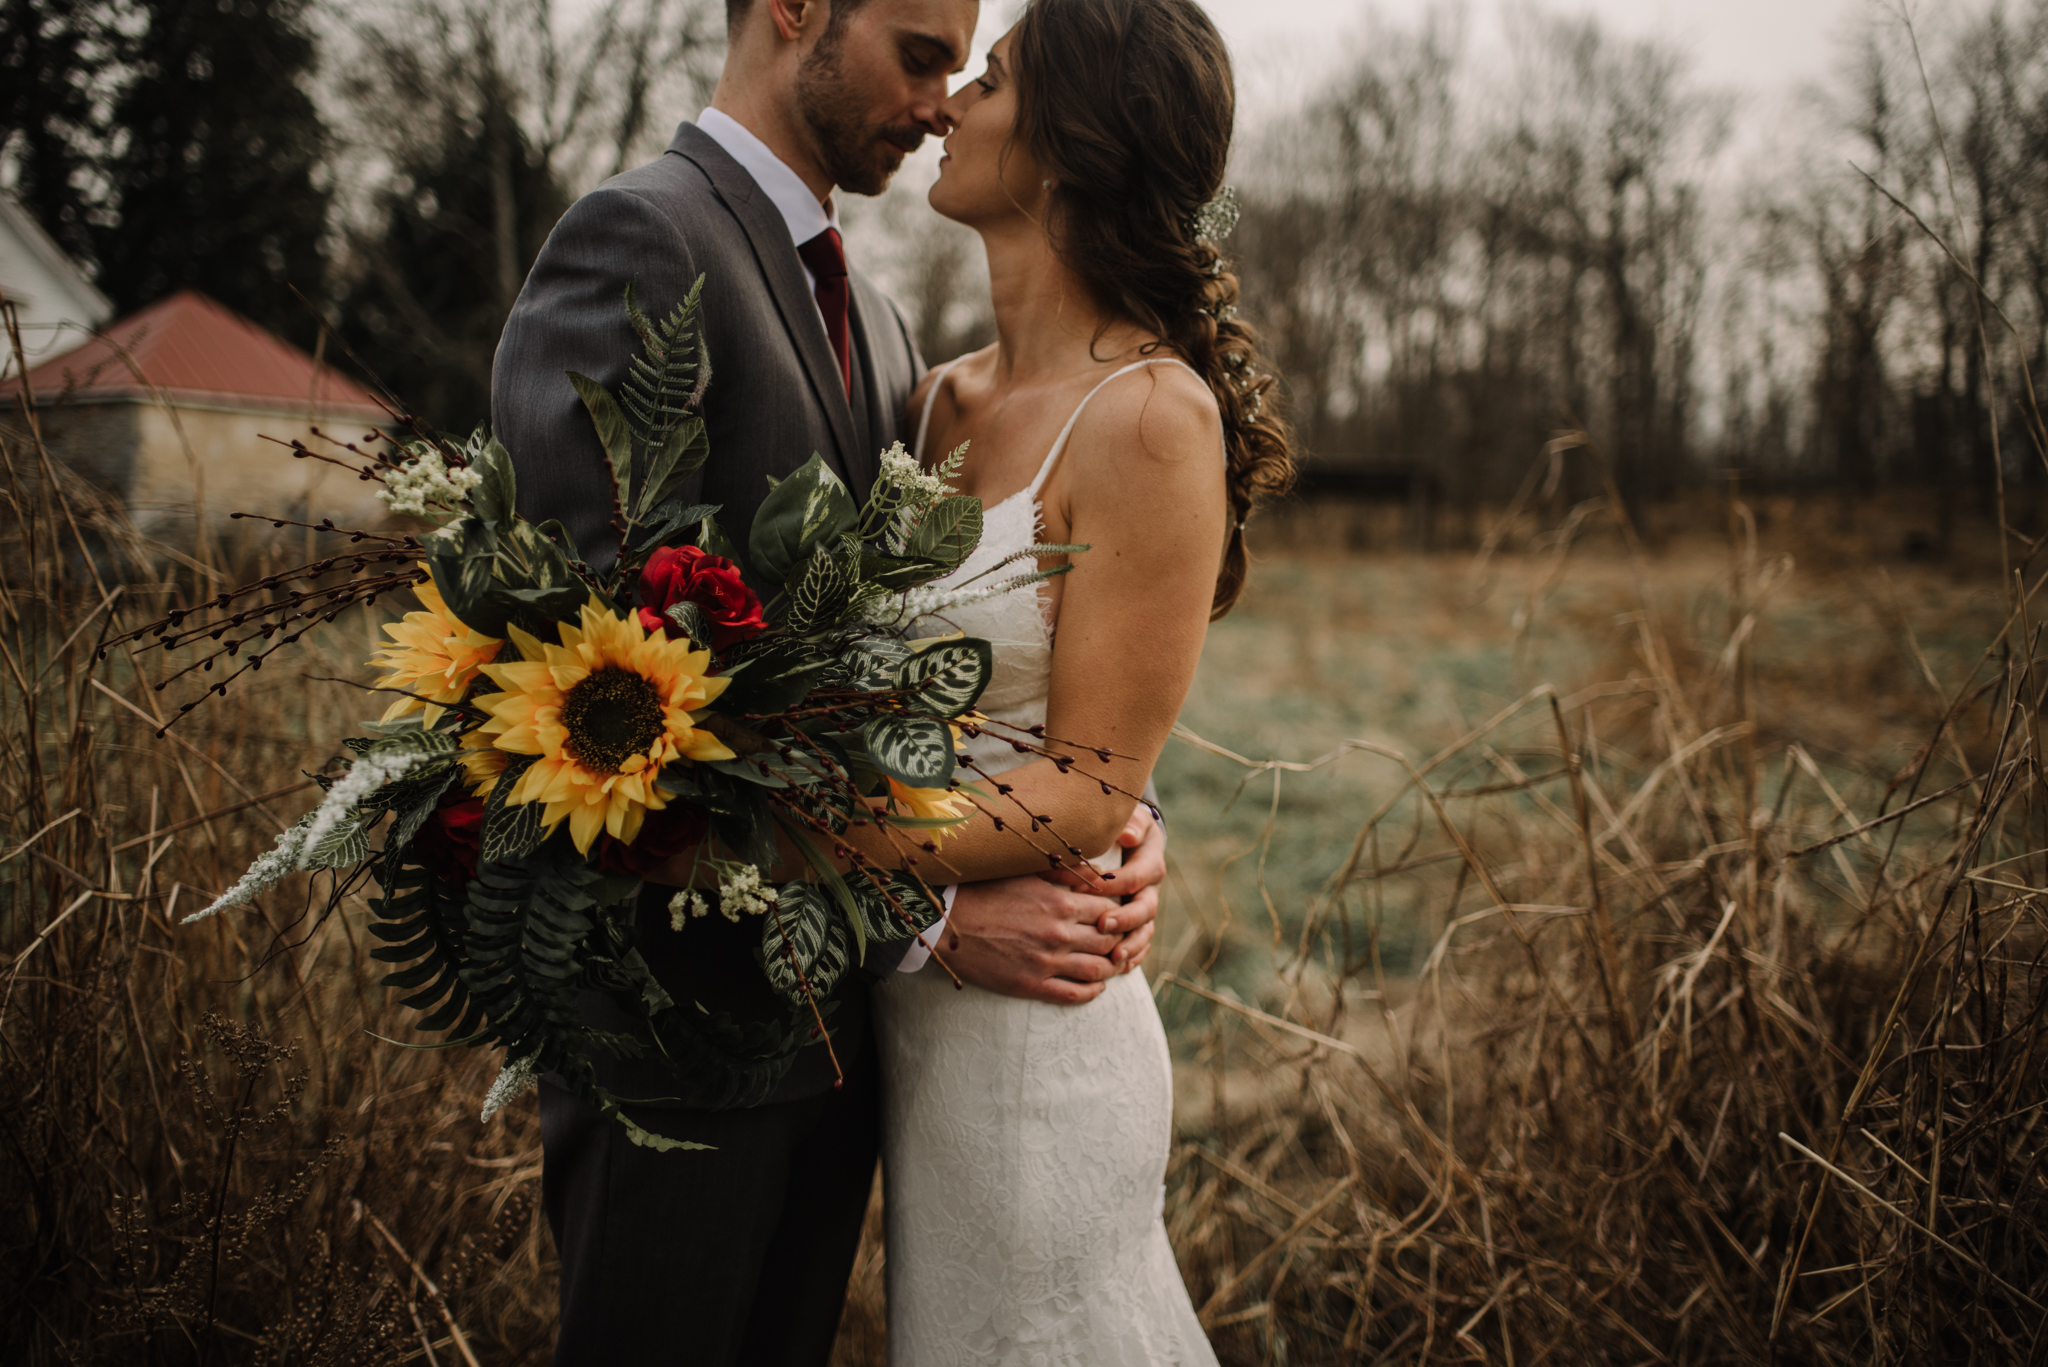 Shenandoah National Park Elopement Wedding Photographer and Planner_36.jpg